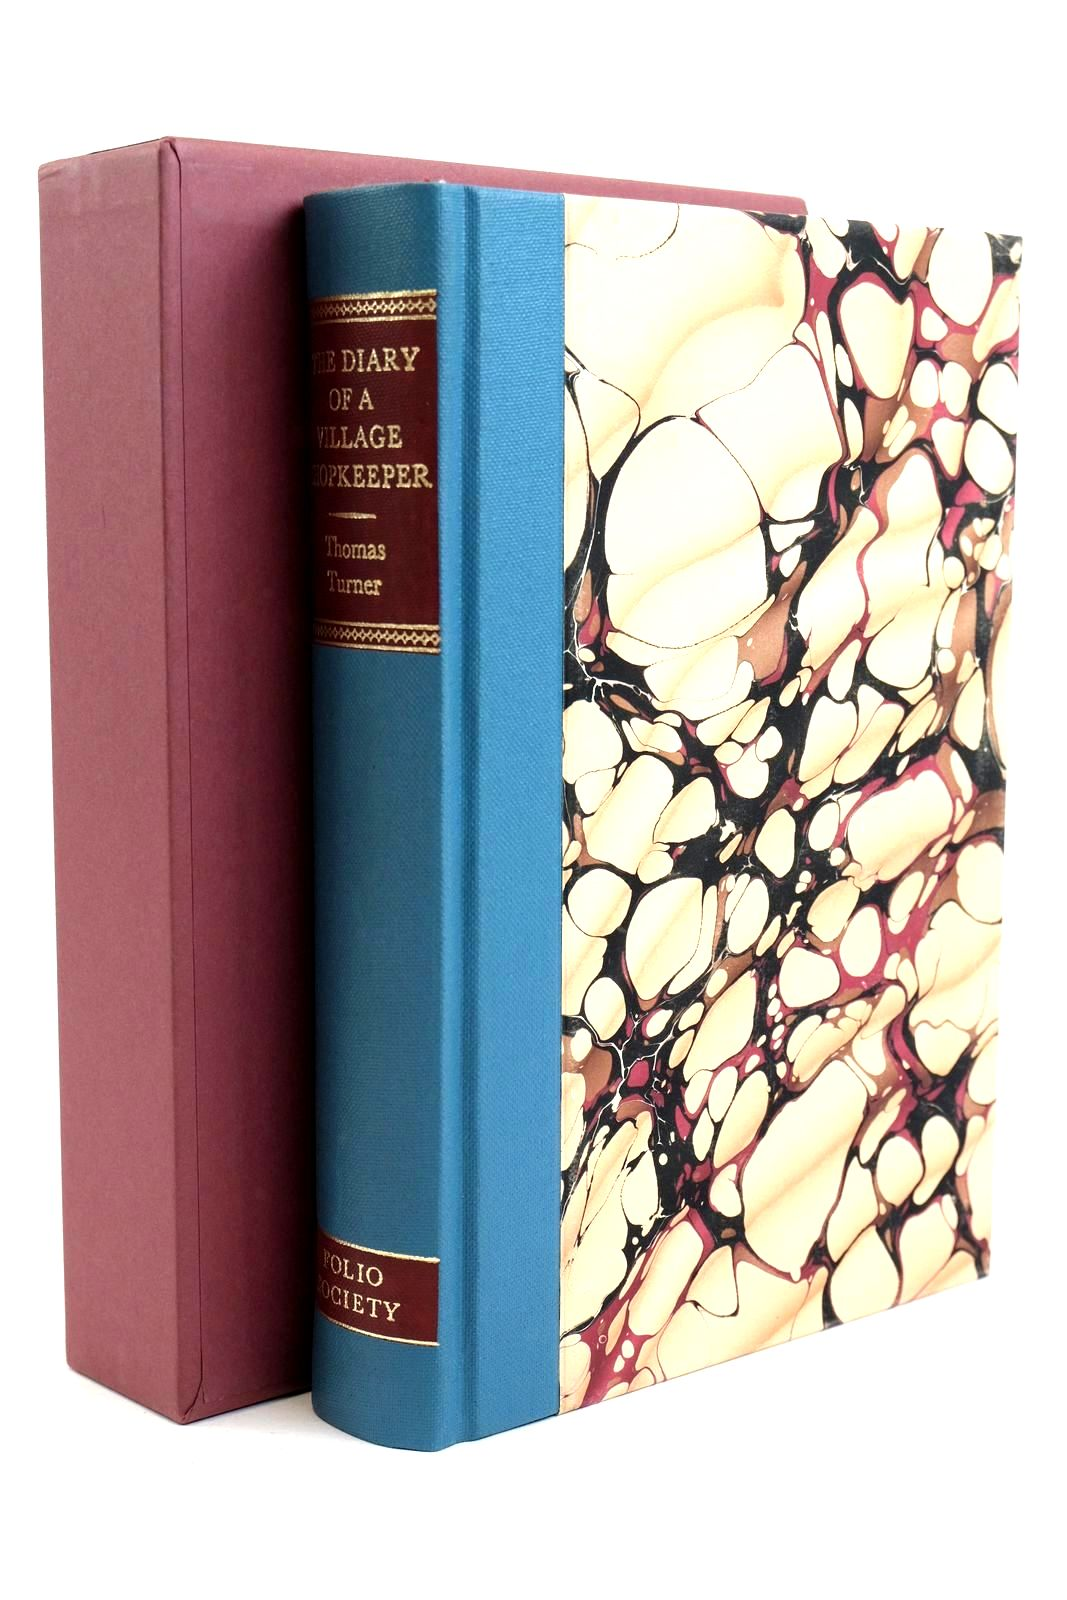 Photo of THE DIARY OF A VILLAGE SHOPKEEPER 1754-1765 written by Turner, Thomas Vaisey, David illustrated by Macgregor, Miriam published by Folio Society (STOCK CODE: 1320467)  for sale by Stella & Rose's Books